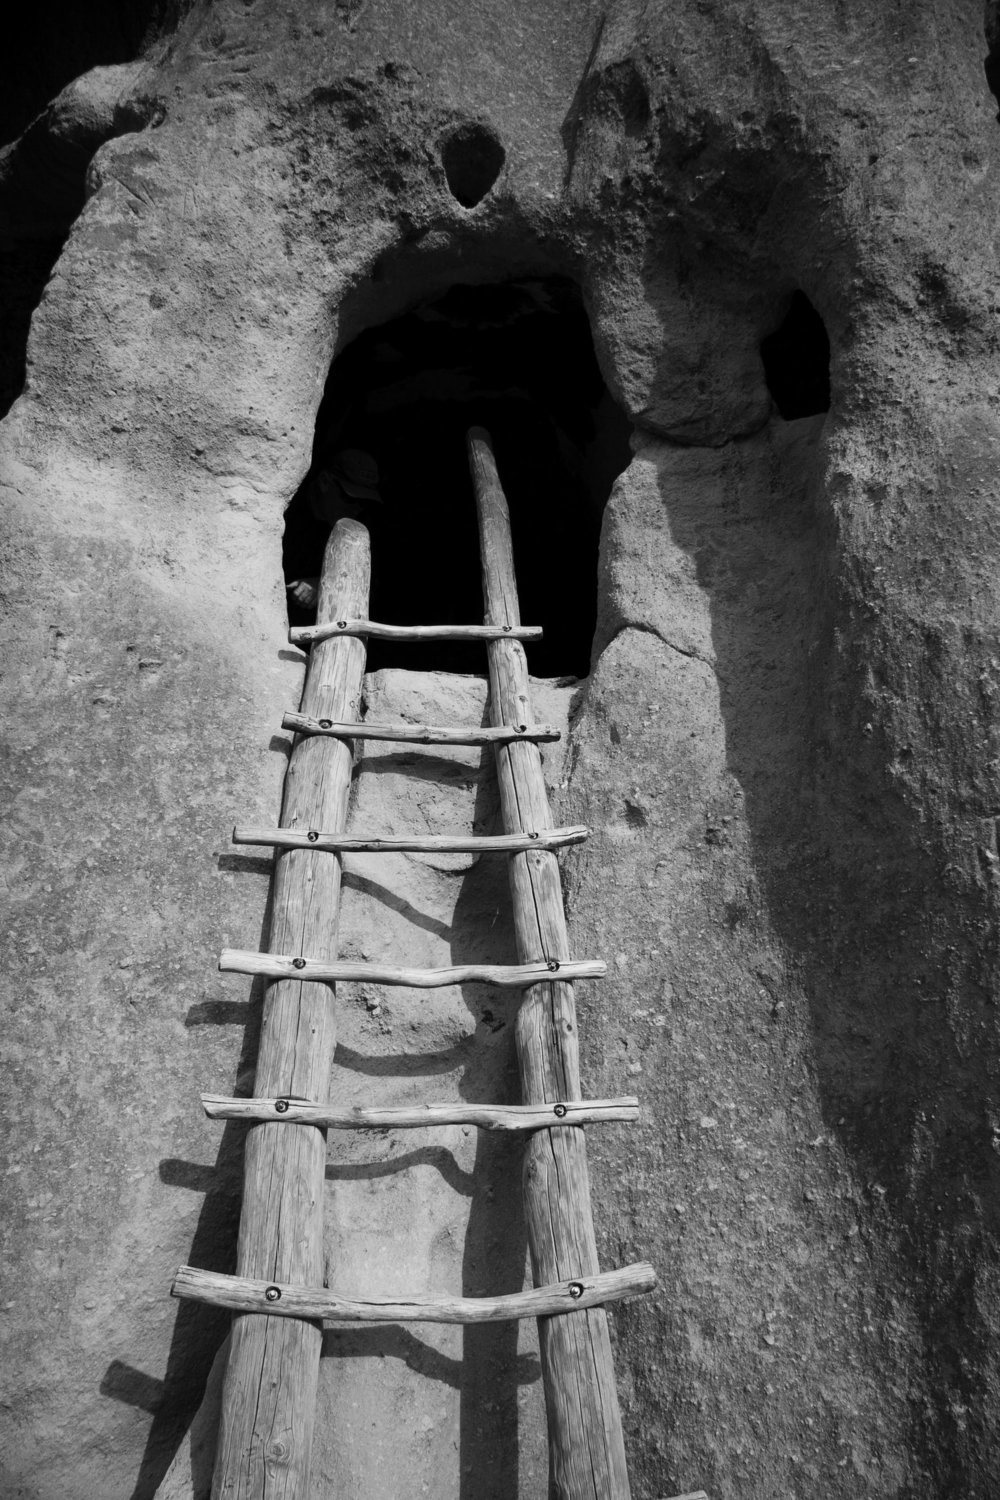 bandelier-national-monument-nm_17099721255_o.jpg